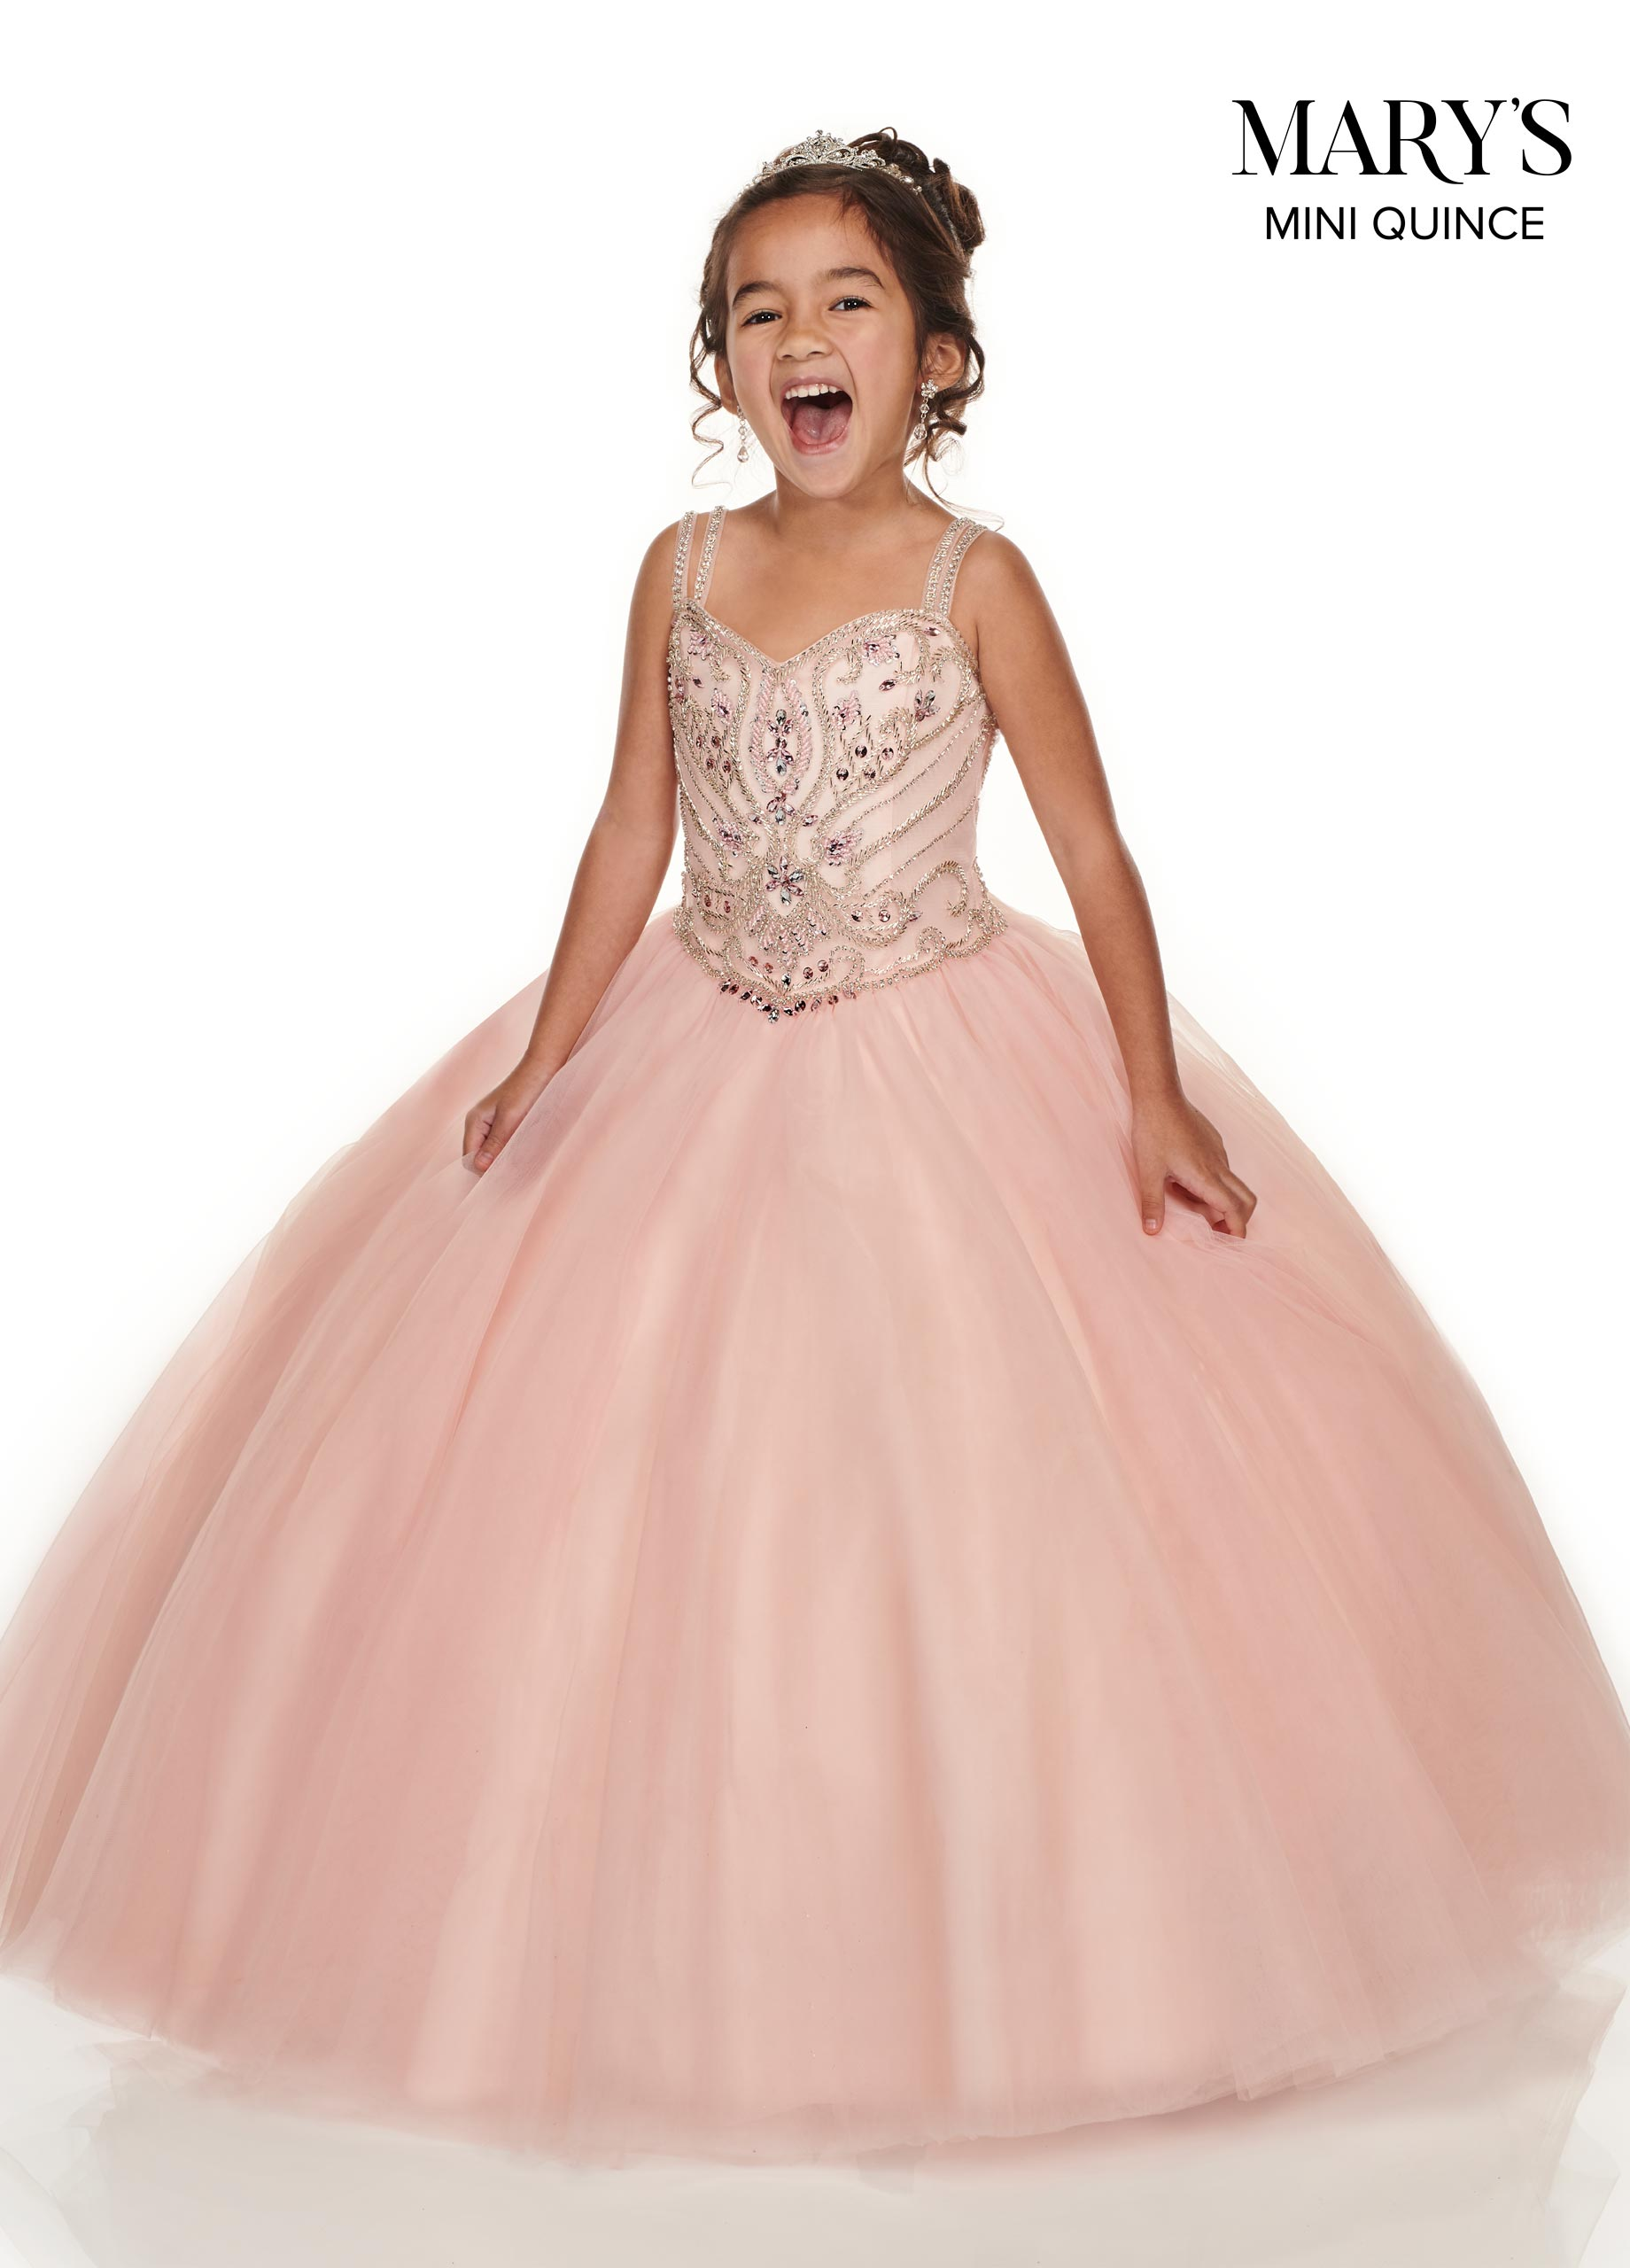 Little Quince Dresses | Mini Quince | Style - MQ4011